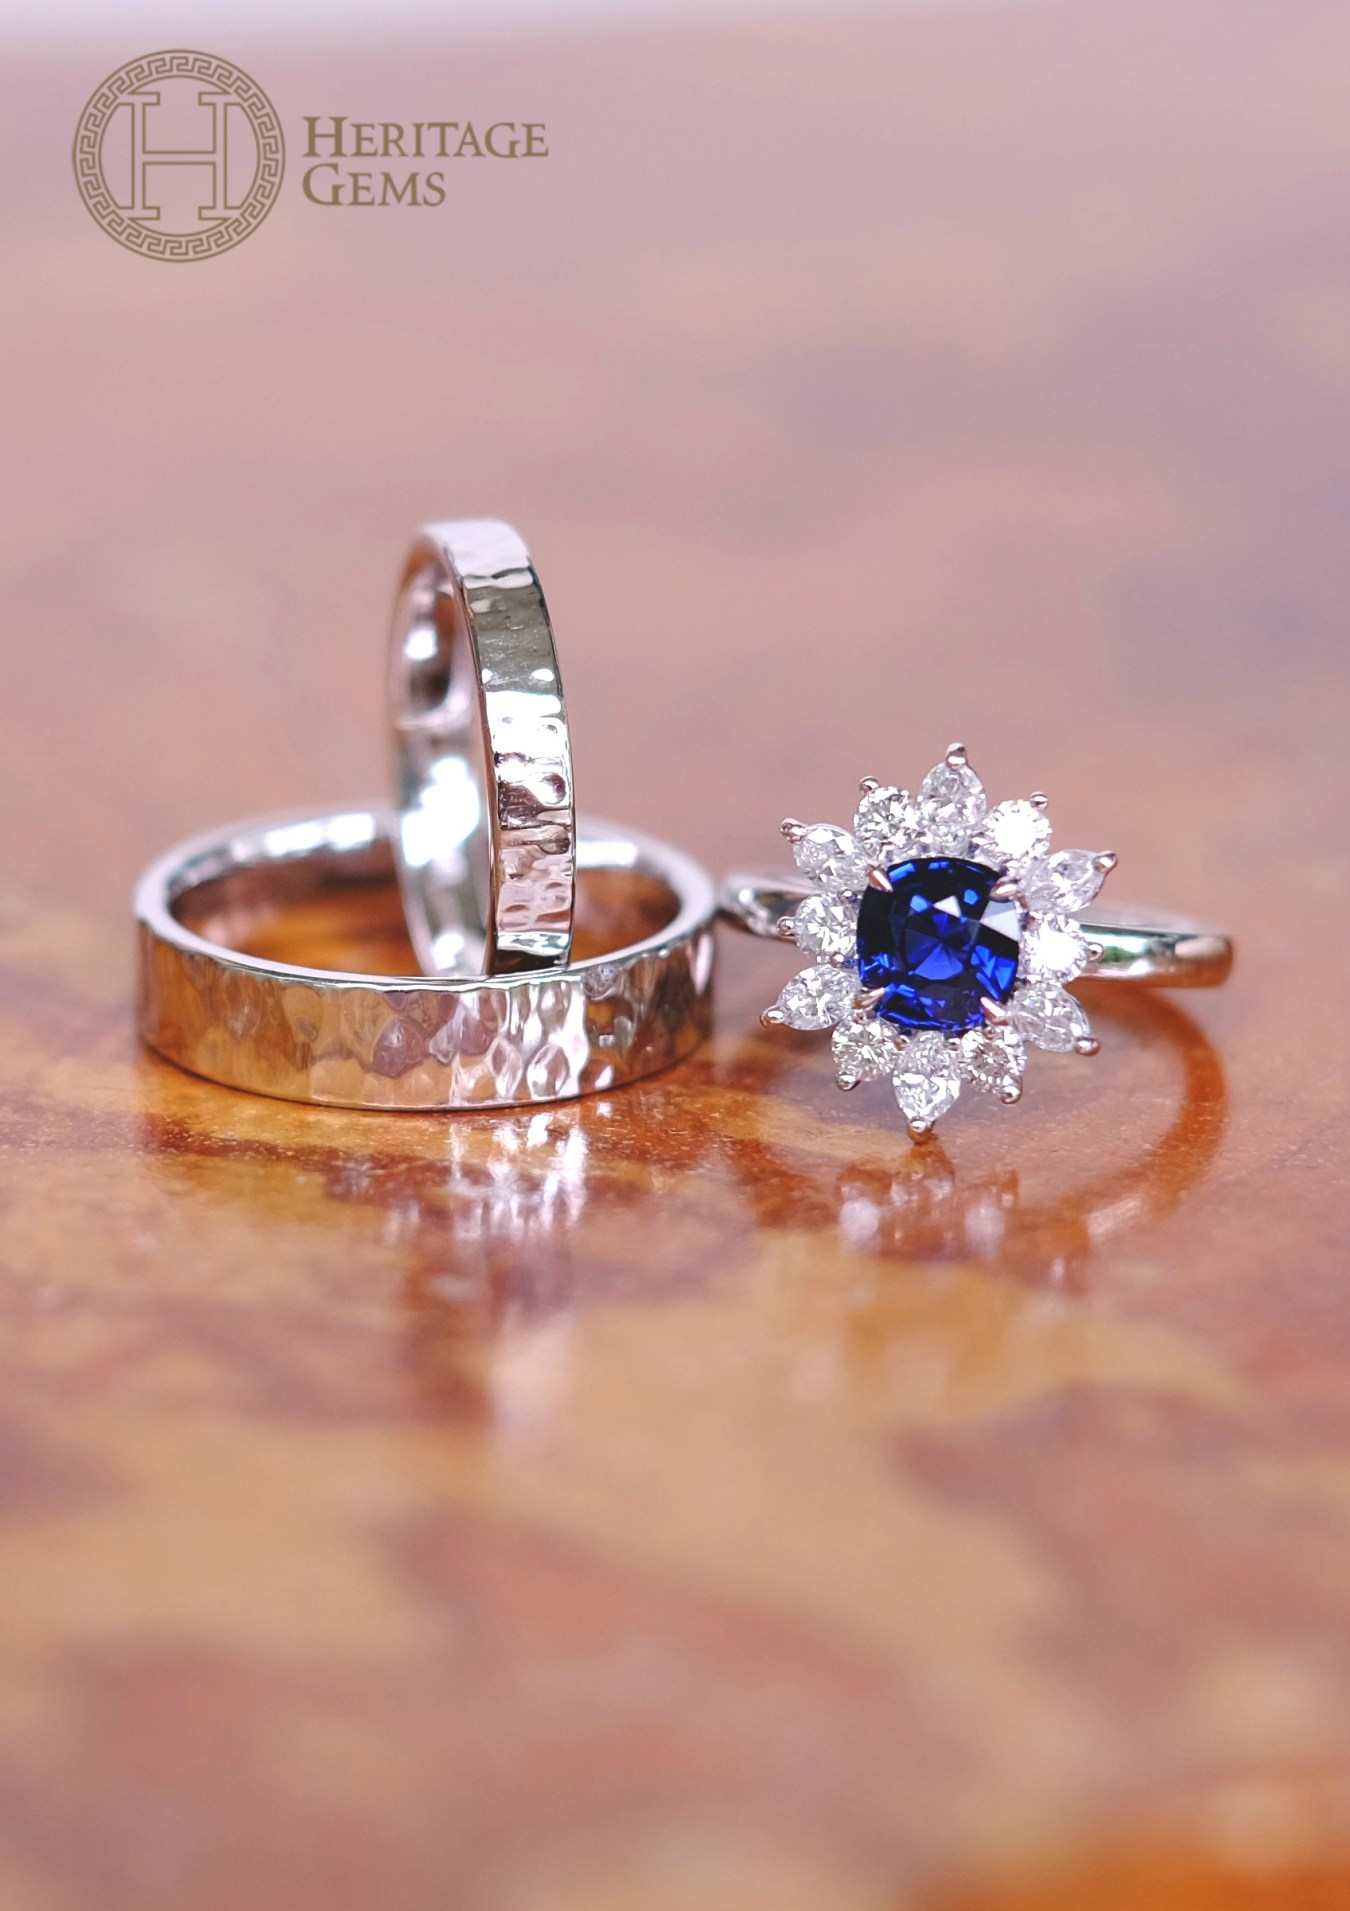 Customise your bespoke jewellery for your engagement or anniversary ...